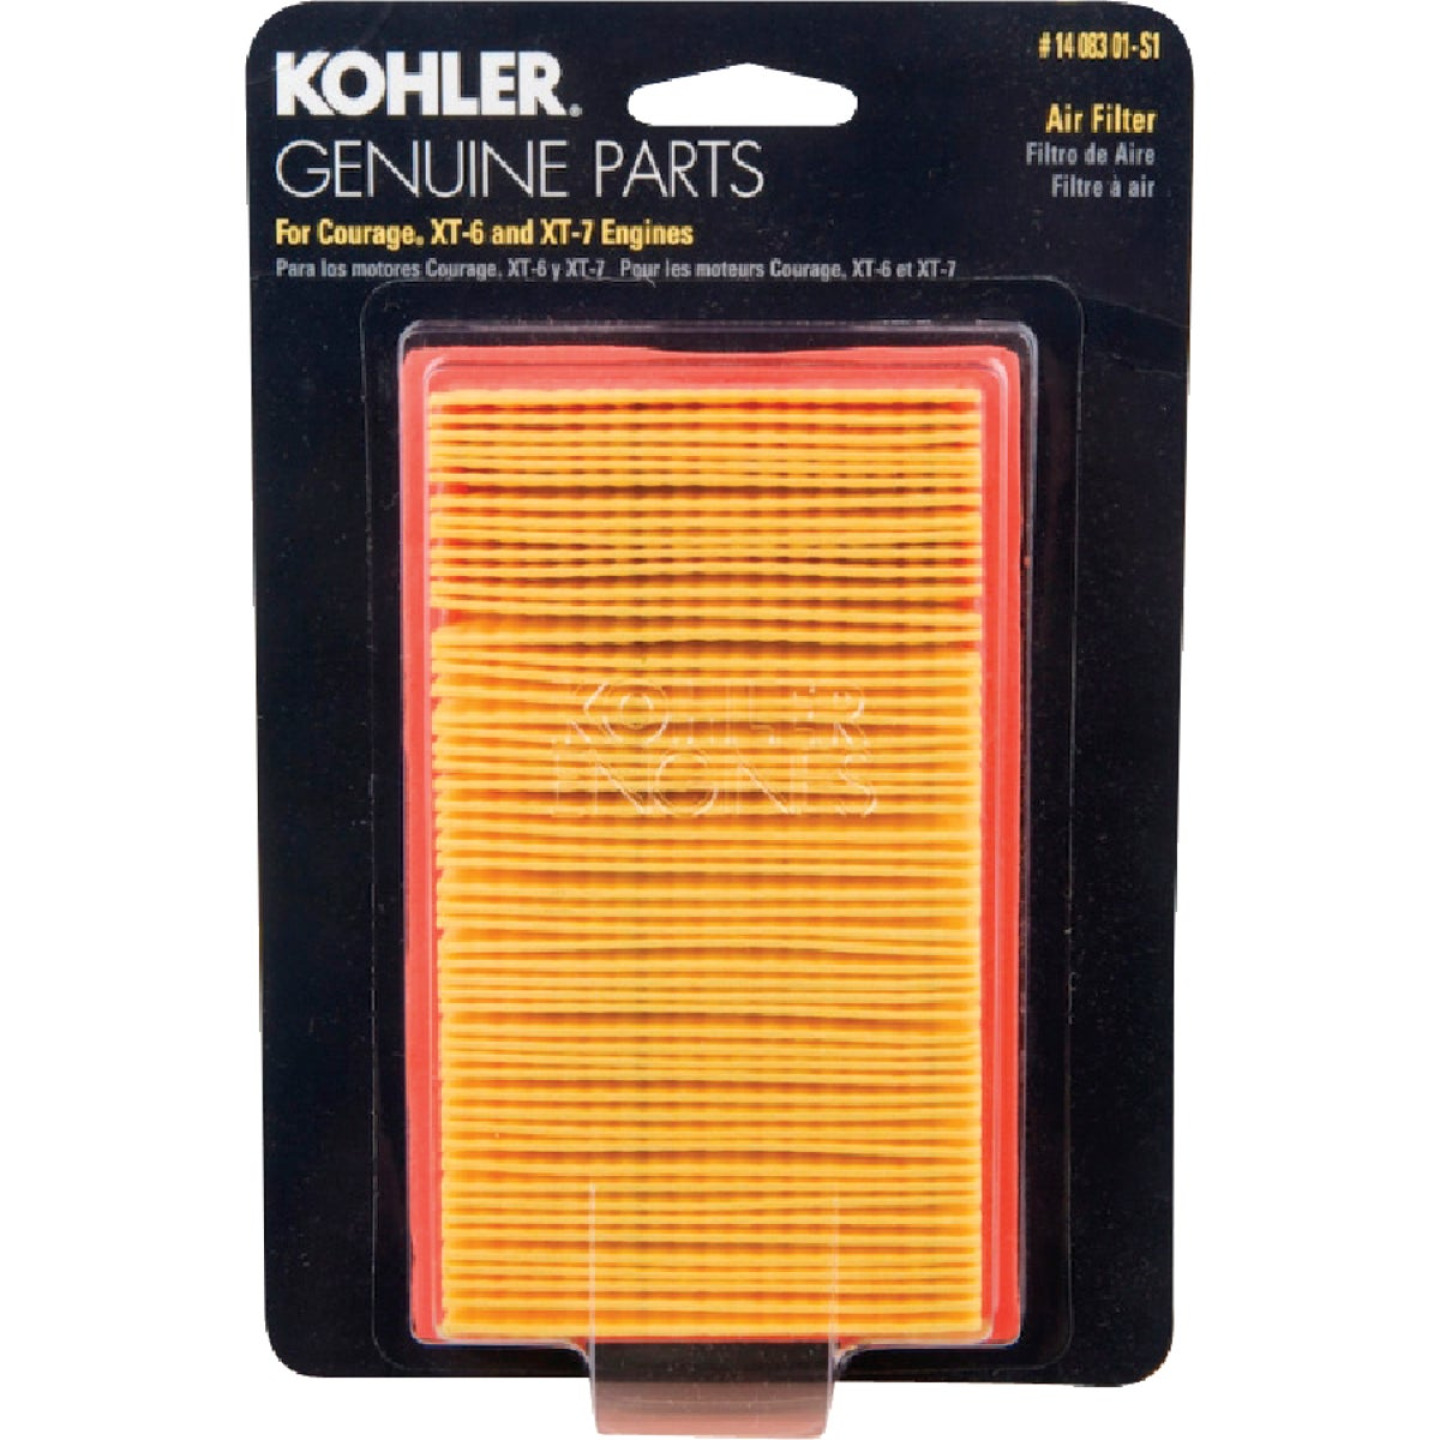 Arnold Kohler 3.5 To 4.5 HP Paper Engine Air Filter Image 1